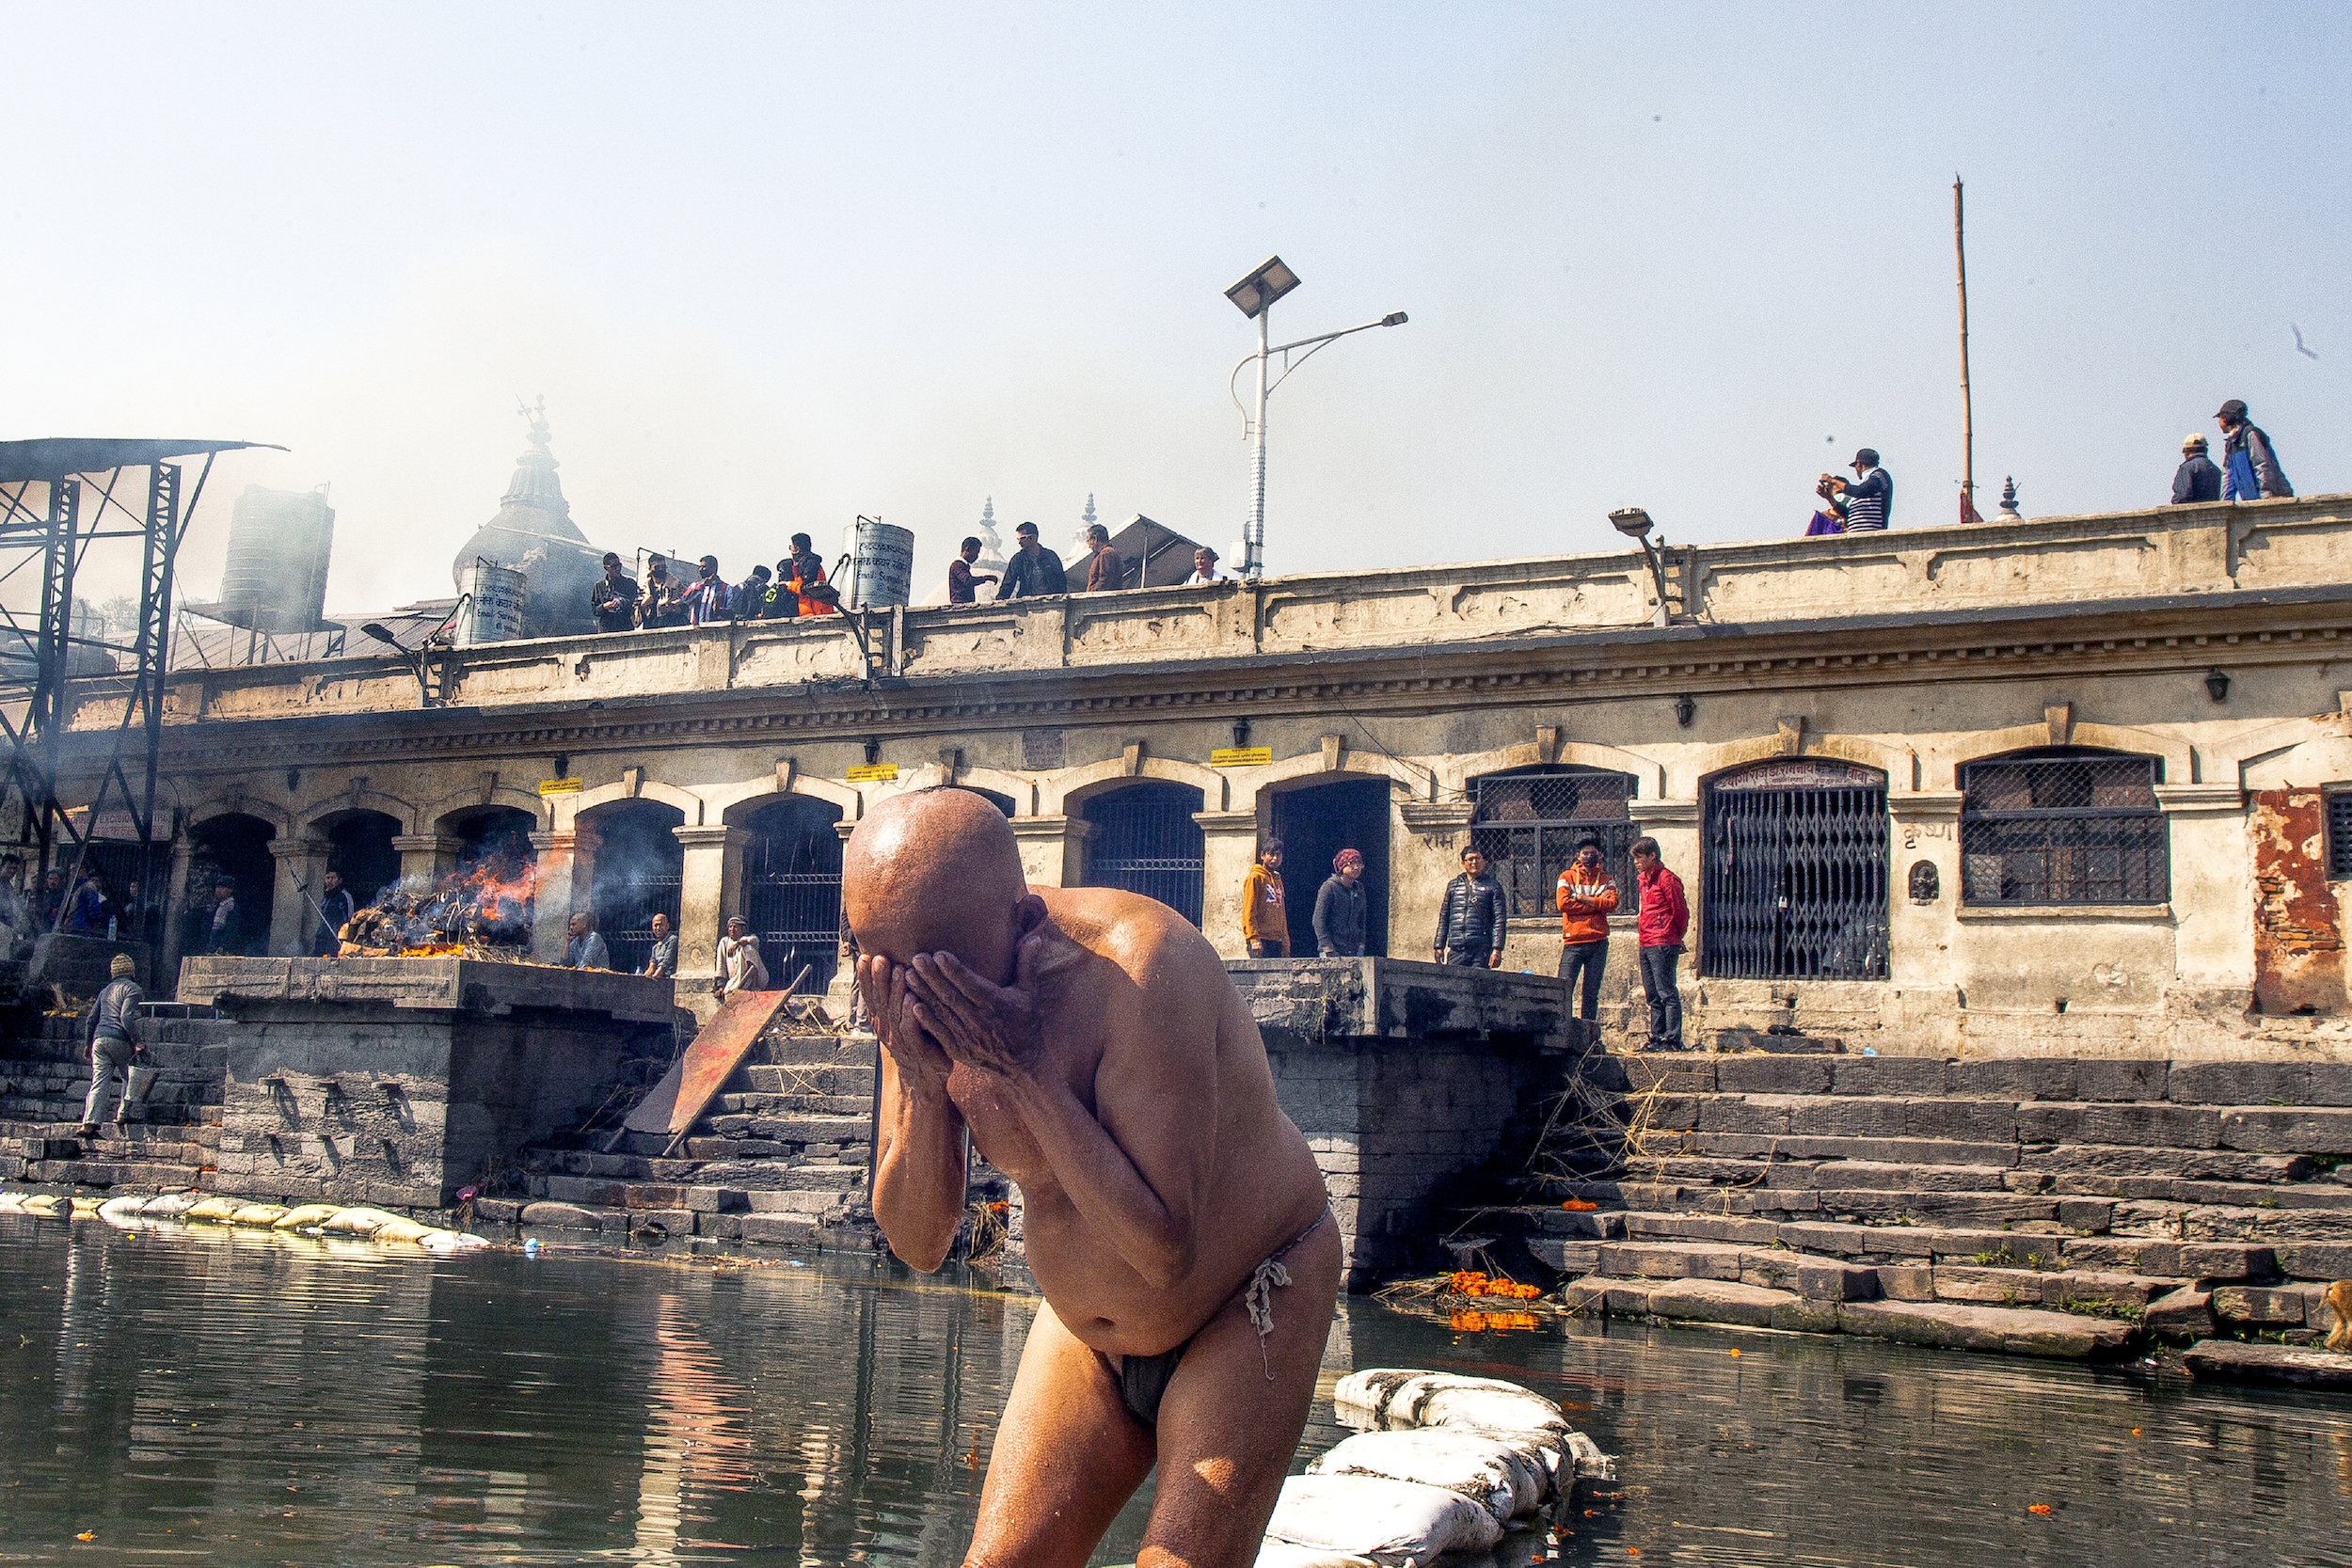 A man washes in the Bagmati River after Tonsure.